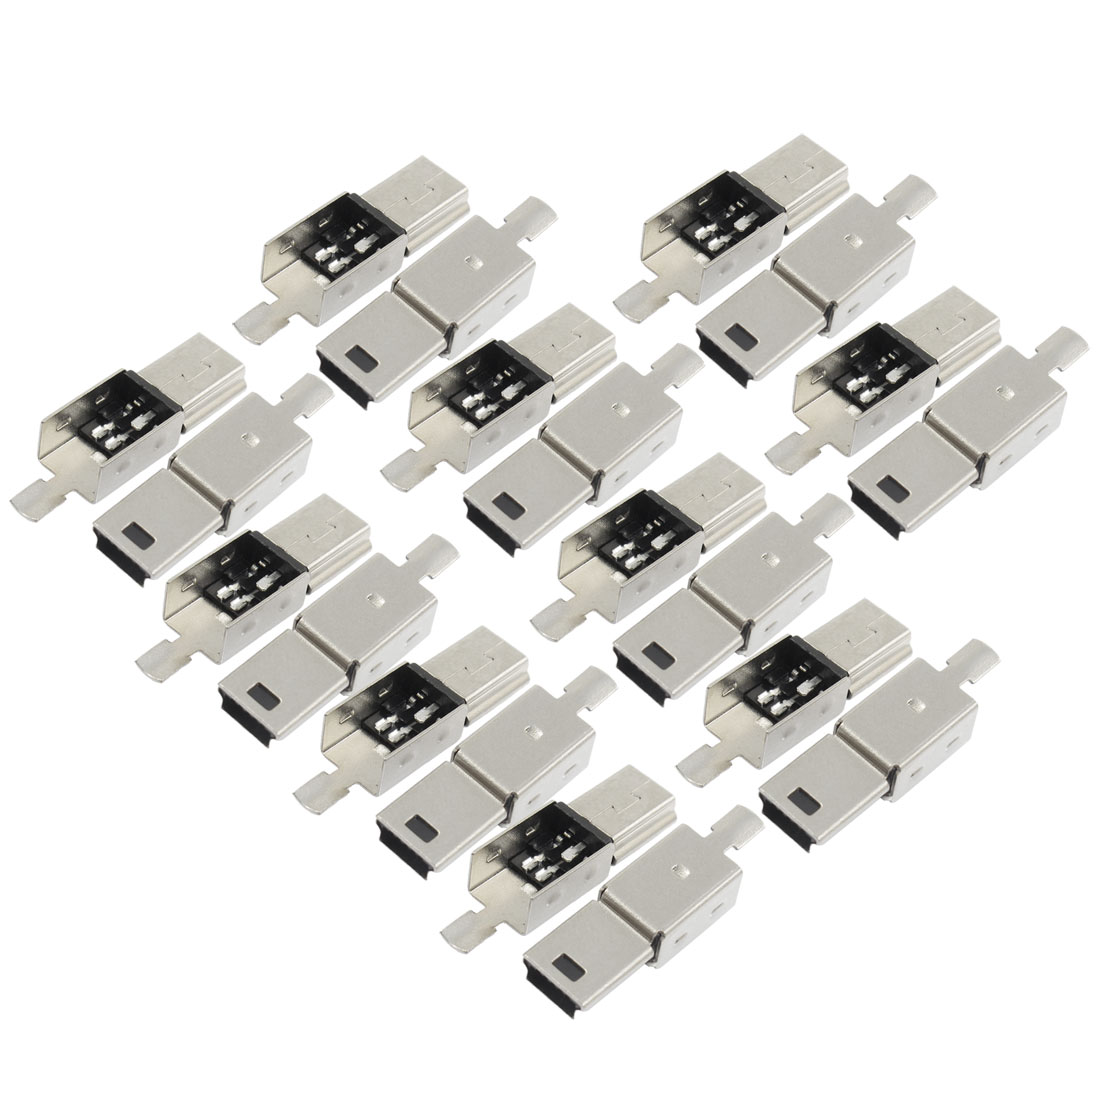 20 x Mini USB 5 Pin Type B Male Connector Replacement Port Solder Jack